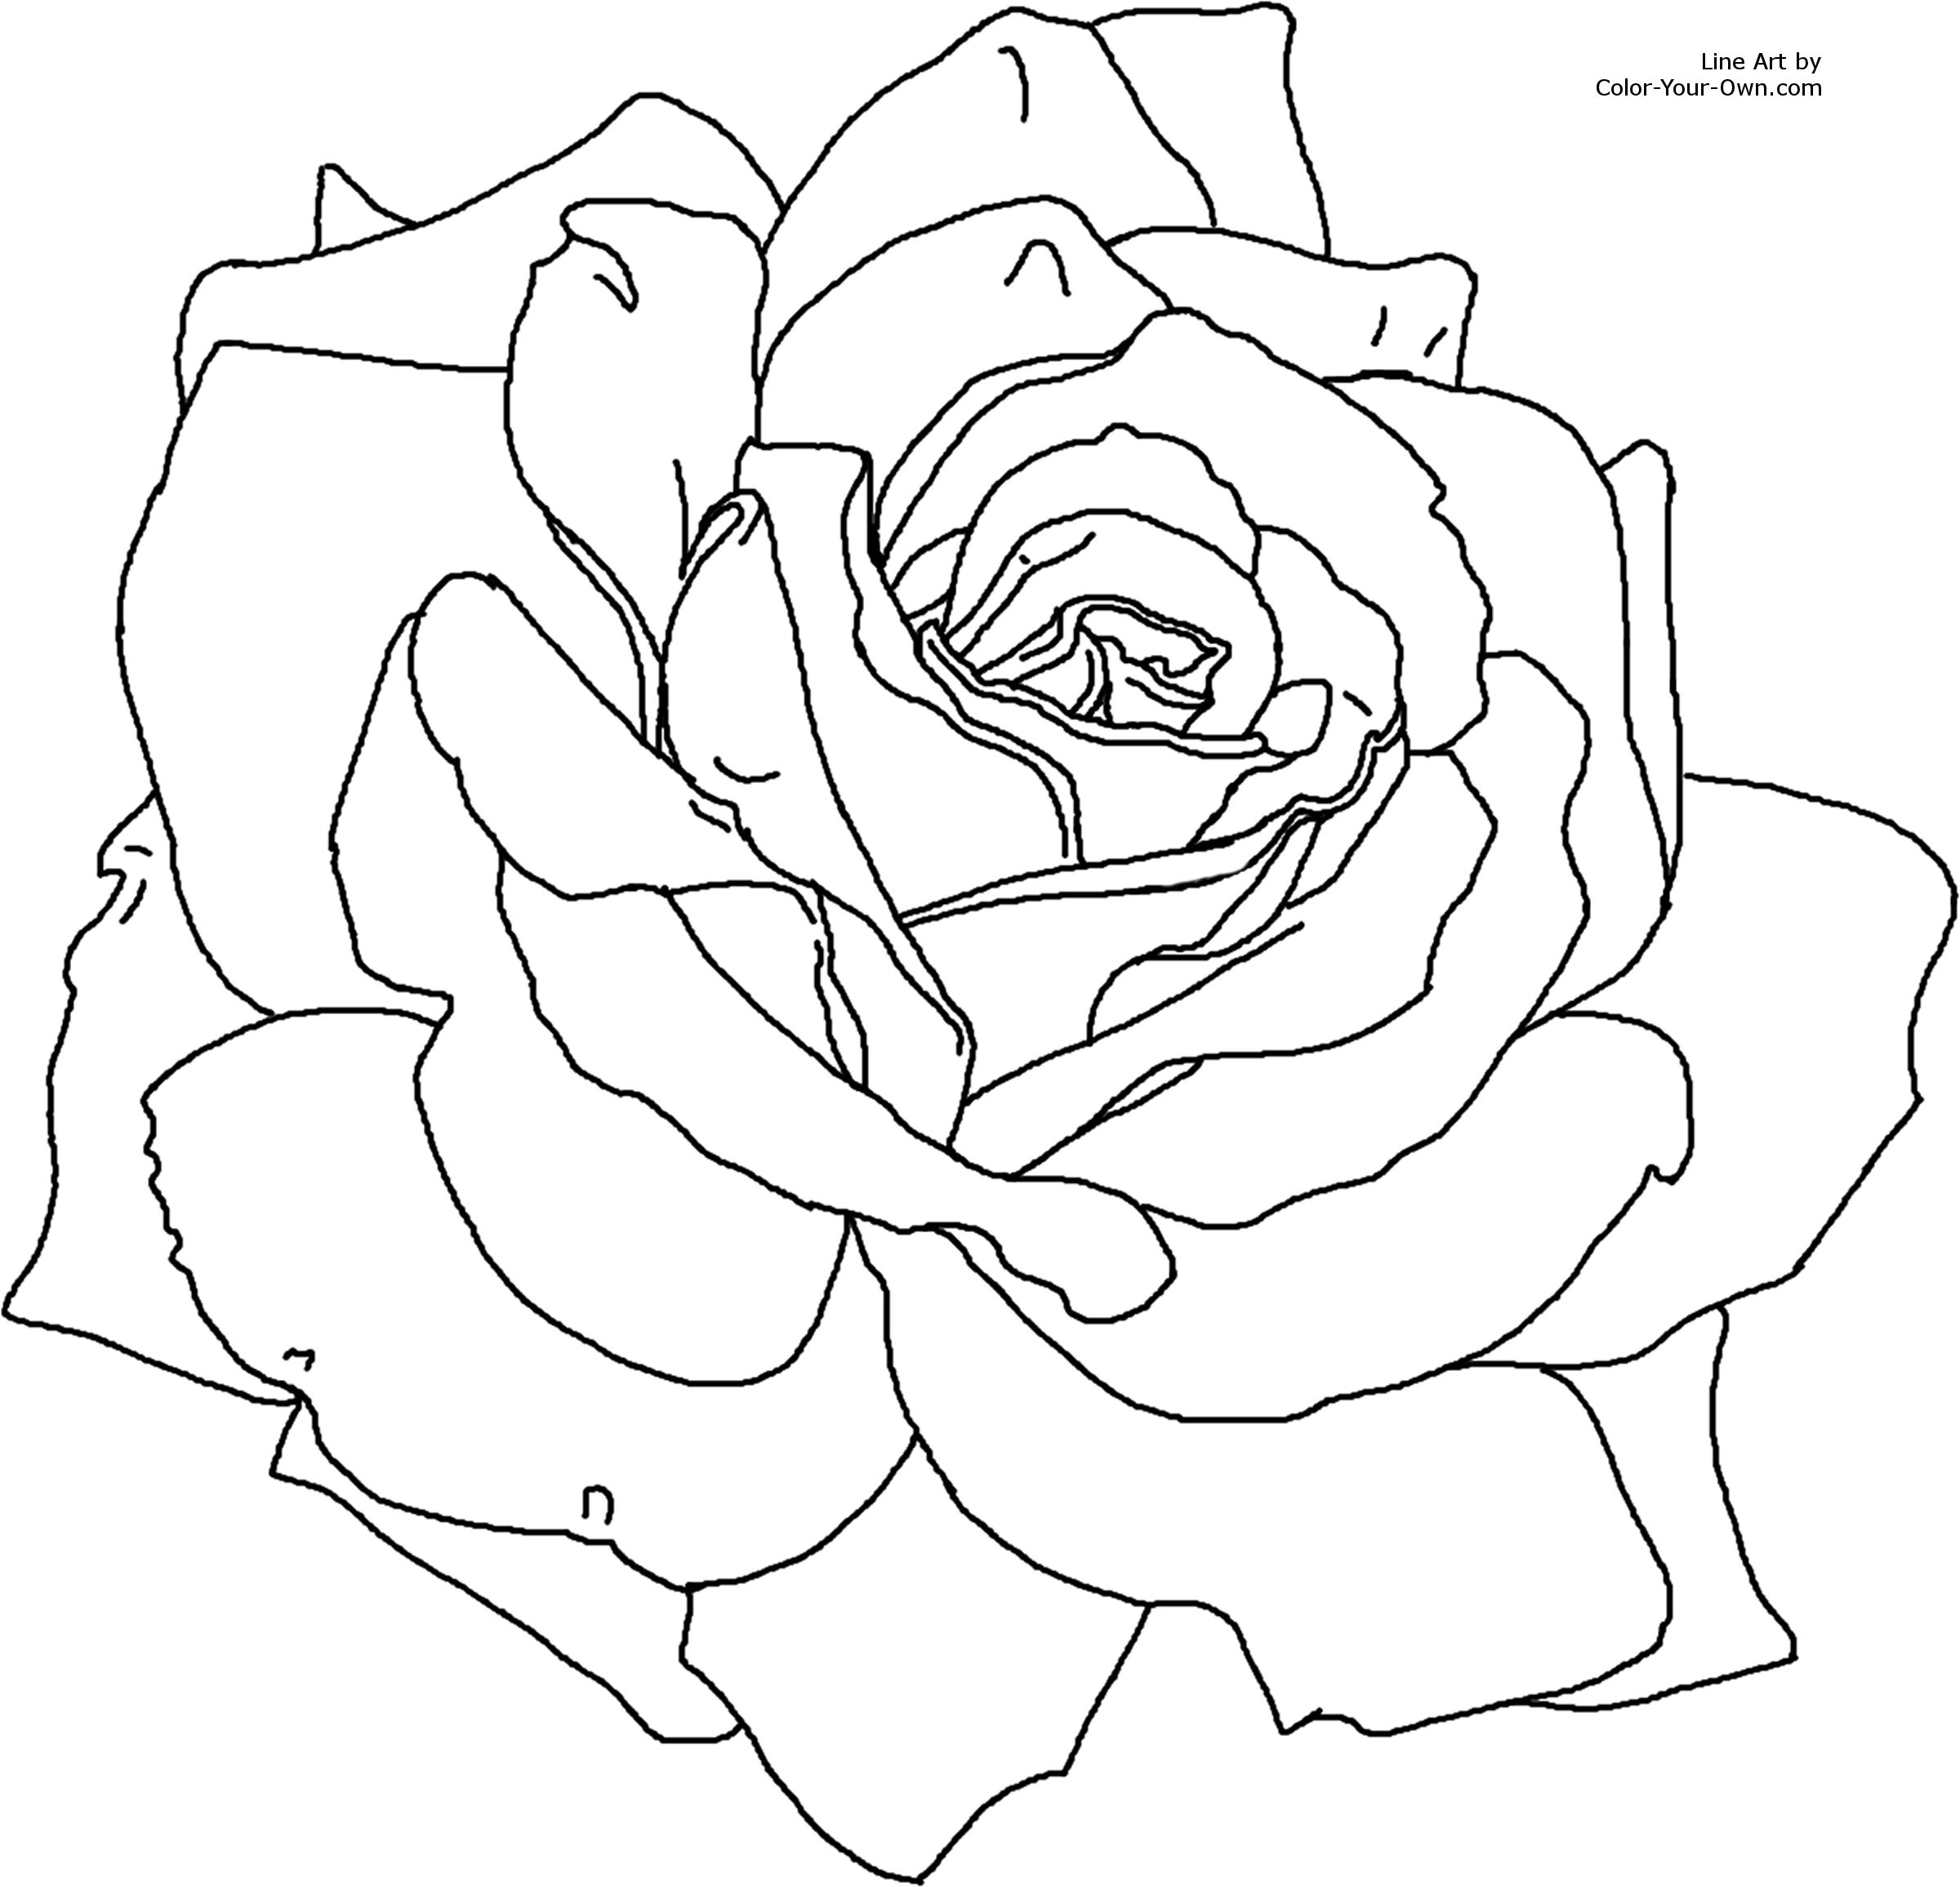 Drawn rose line art Coloring For 11 x Flower